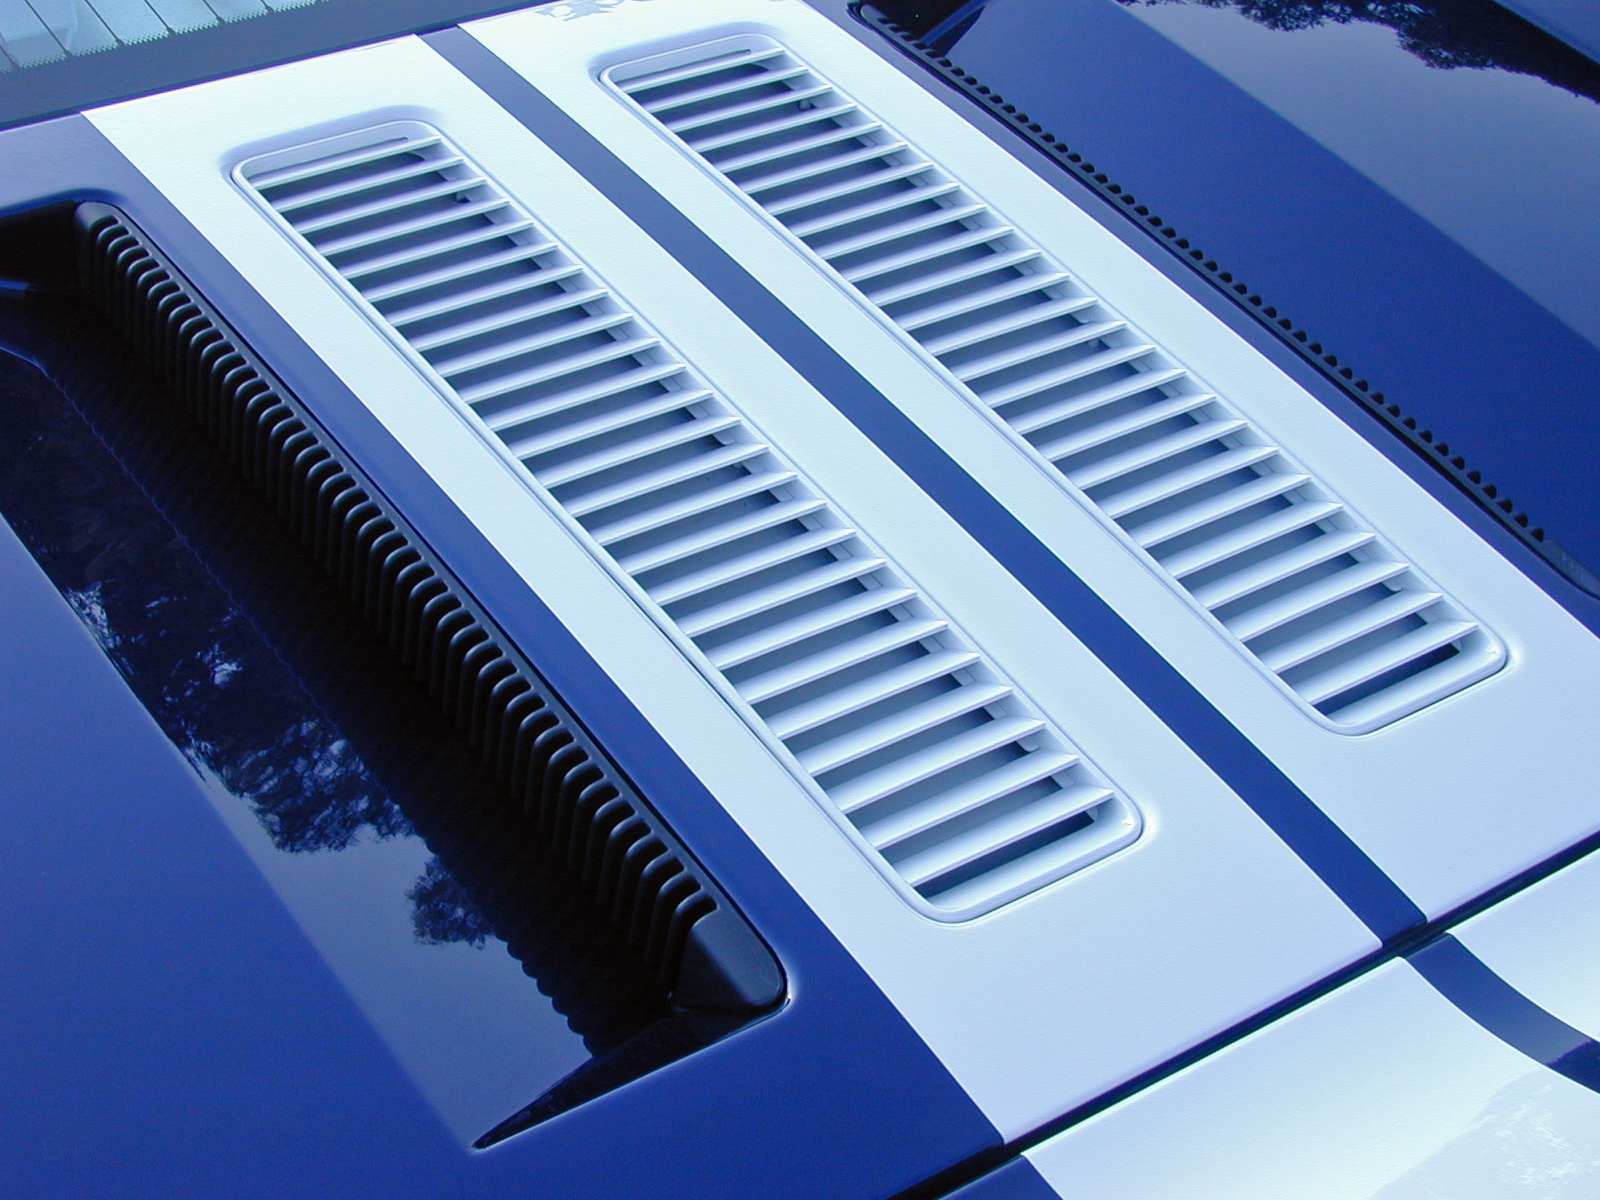 2005 Ford GT Long Term Engine Vents